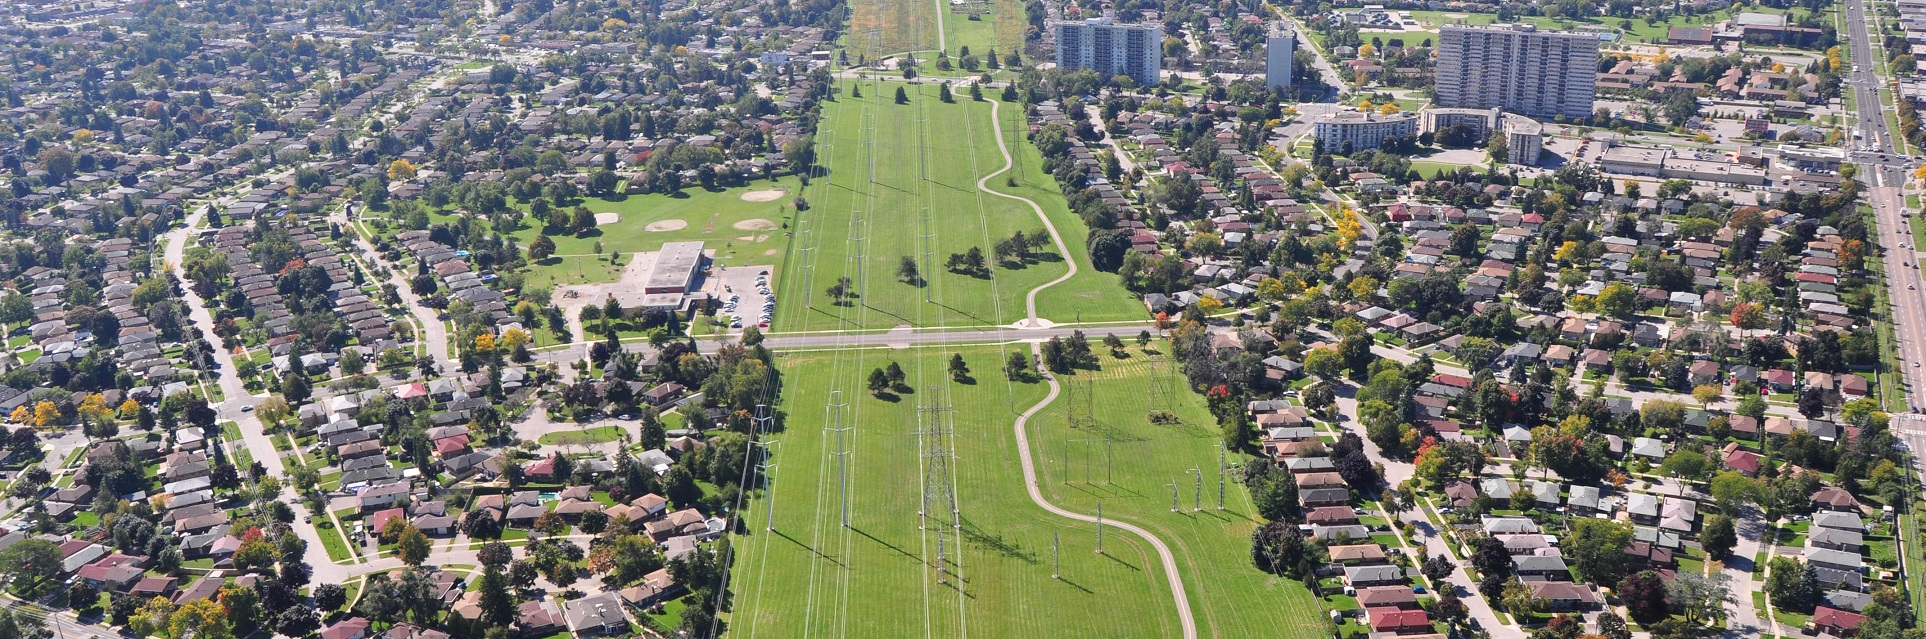 aerial view of Scarborough hydro corridor